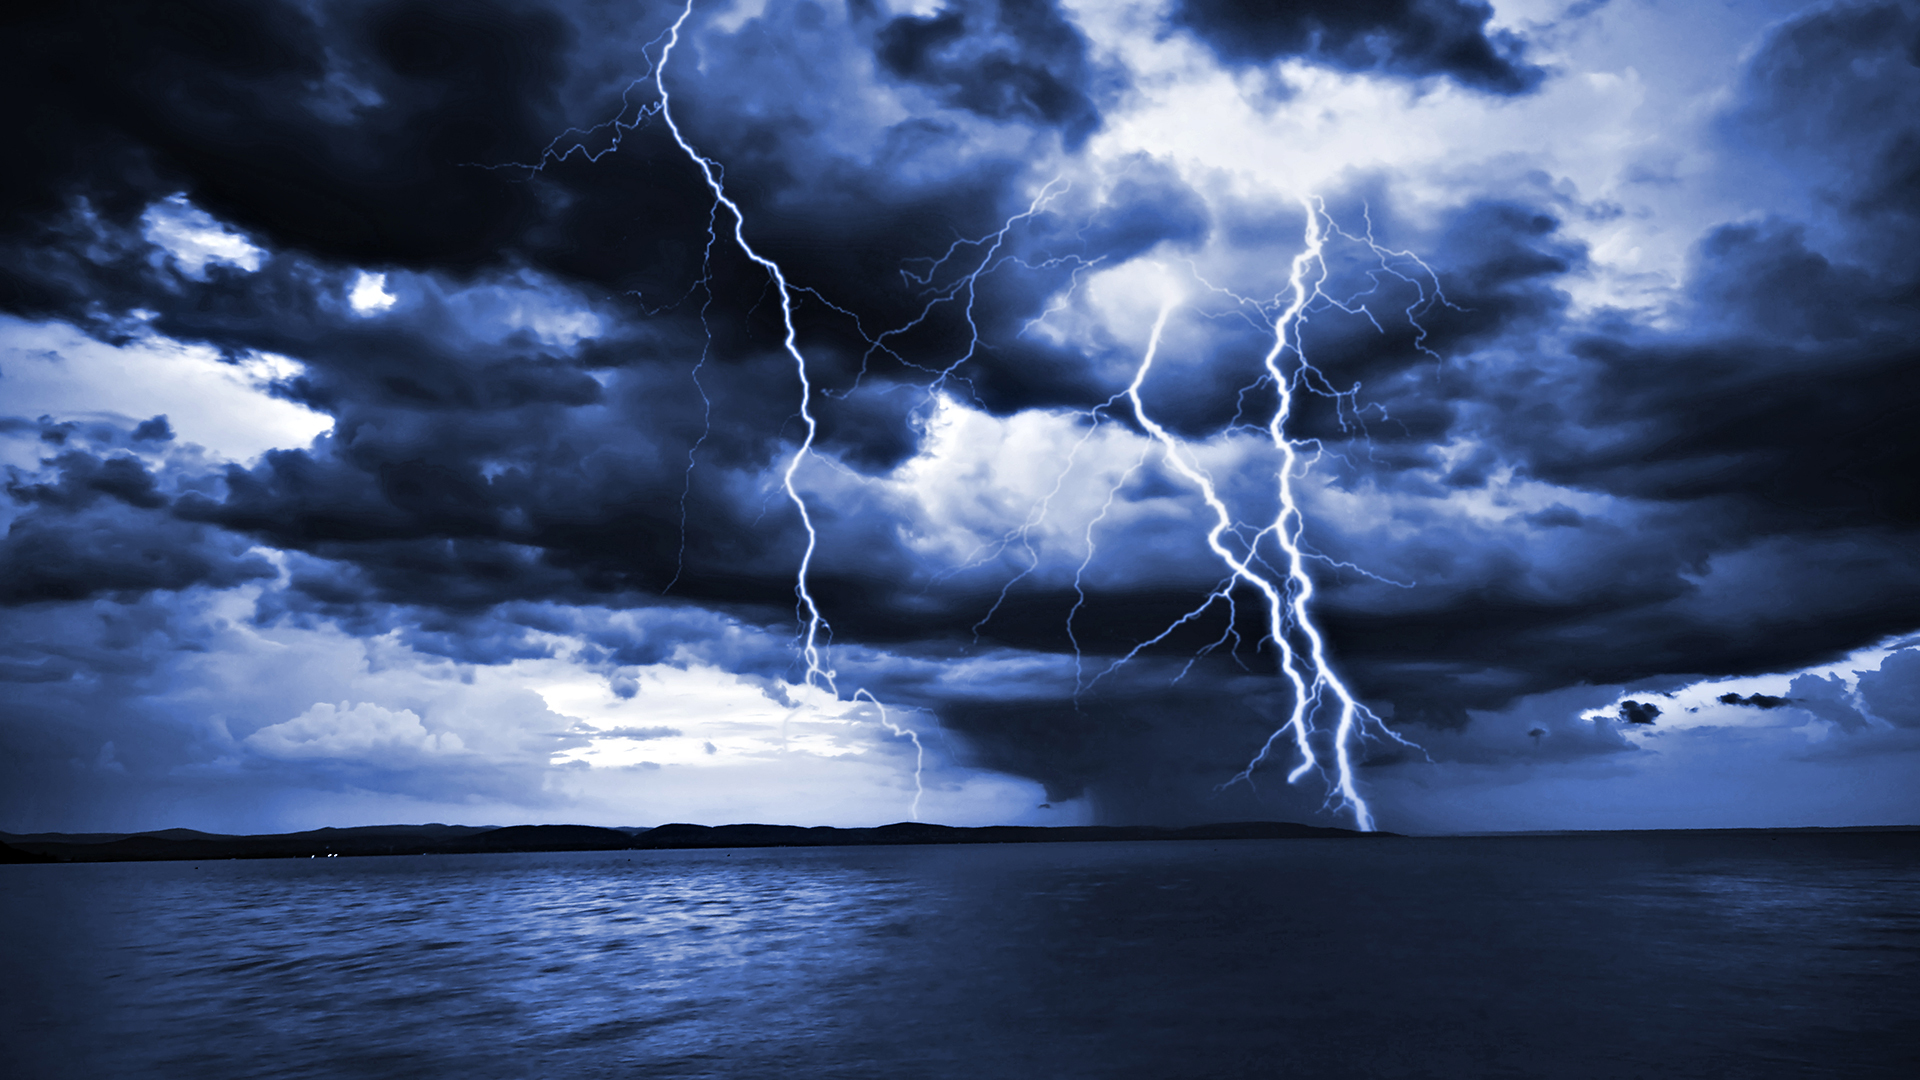 Awesome Storm Clouds Wallpapers